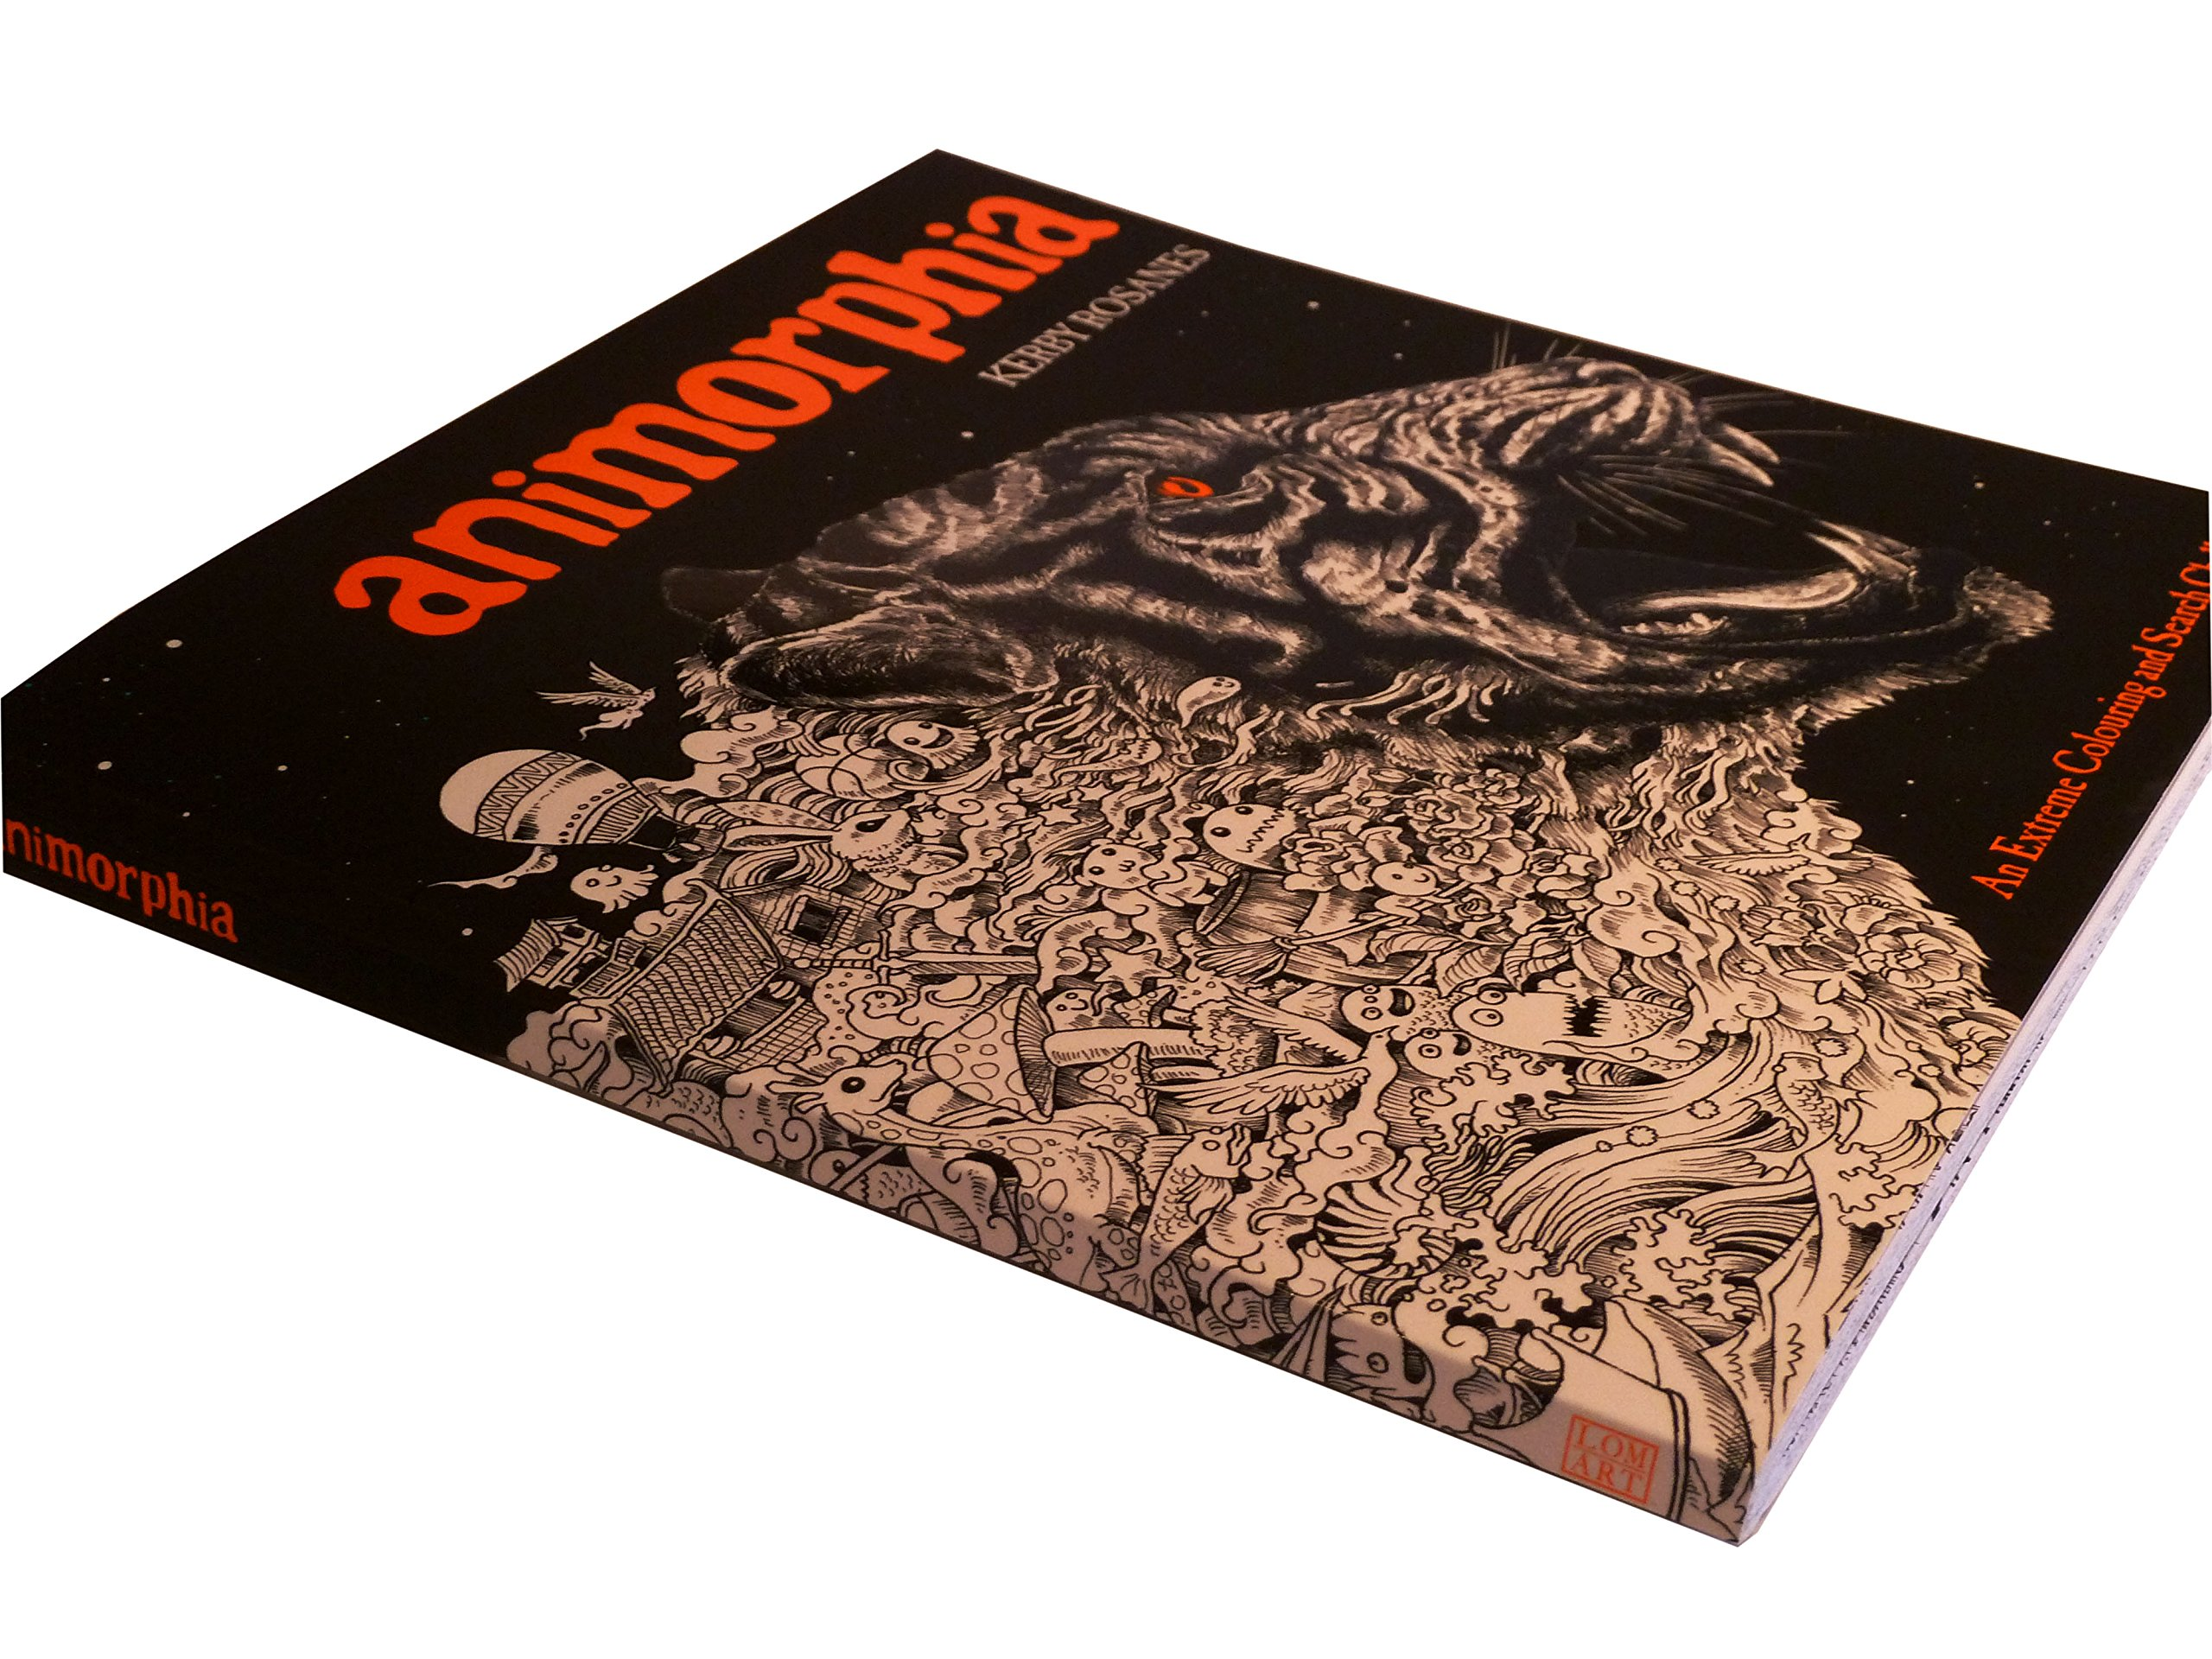 Buy Animorphia An Extreme Colouring And Search Challenge Book Online At Low Prices In India